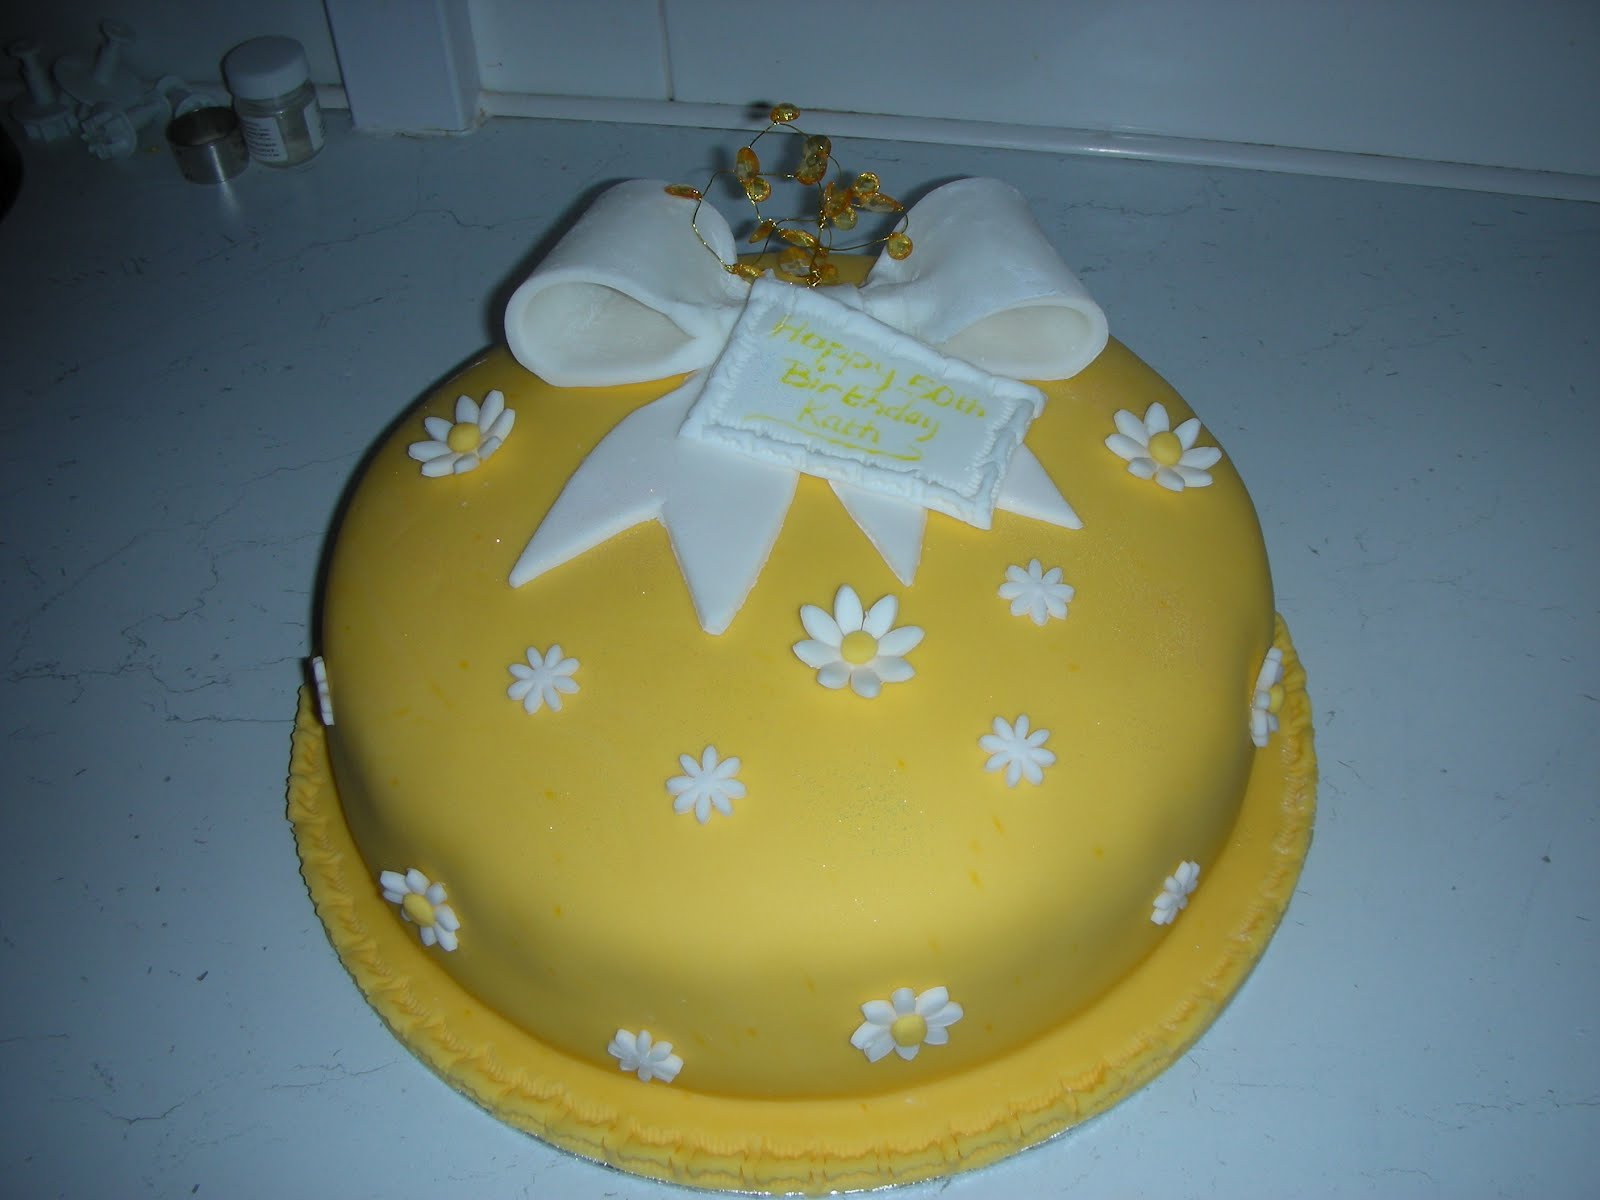 New Latest Cake Images : Sue s Cakes and Other Nonsense: Latest Cakes